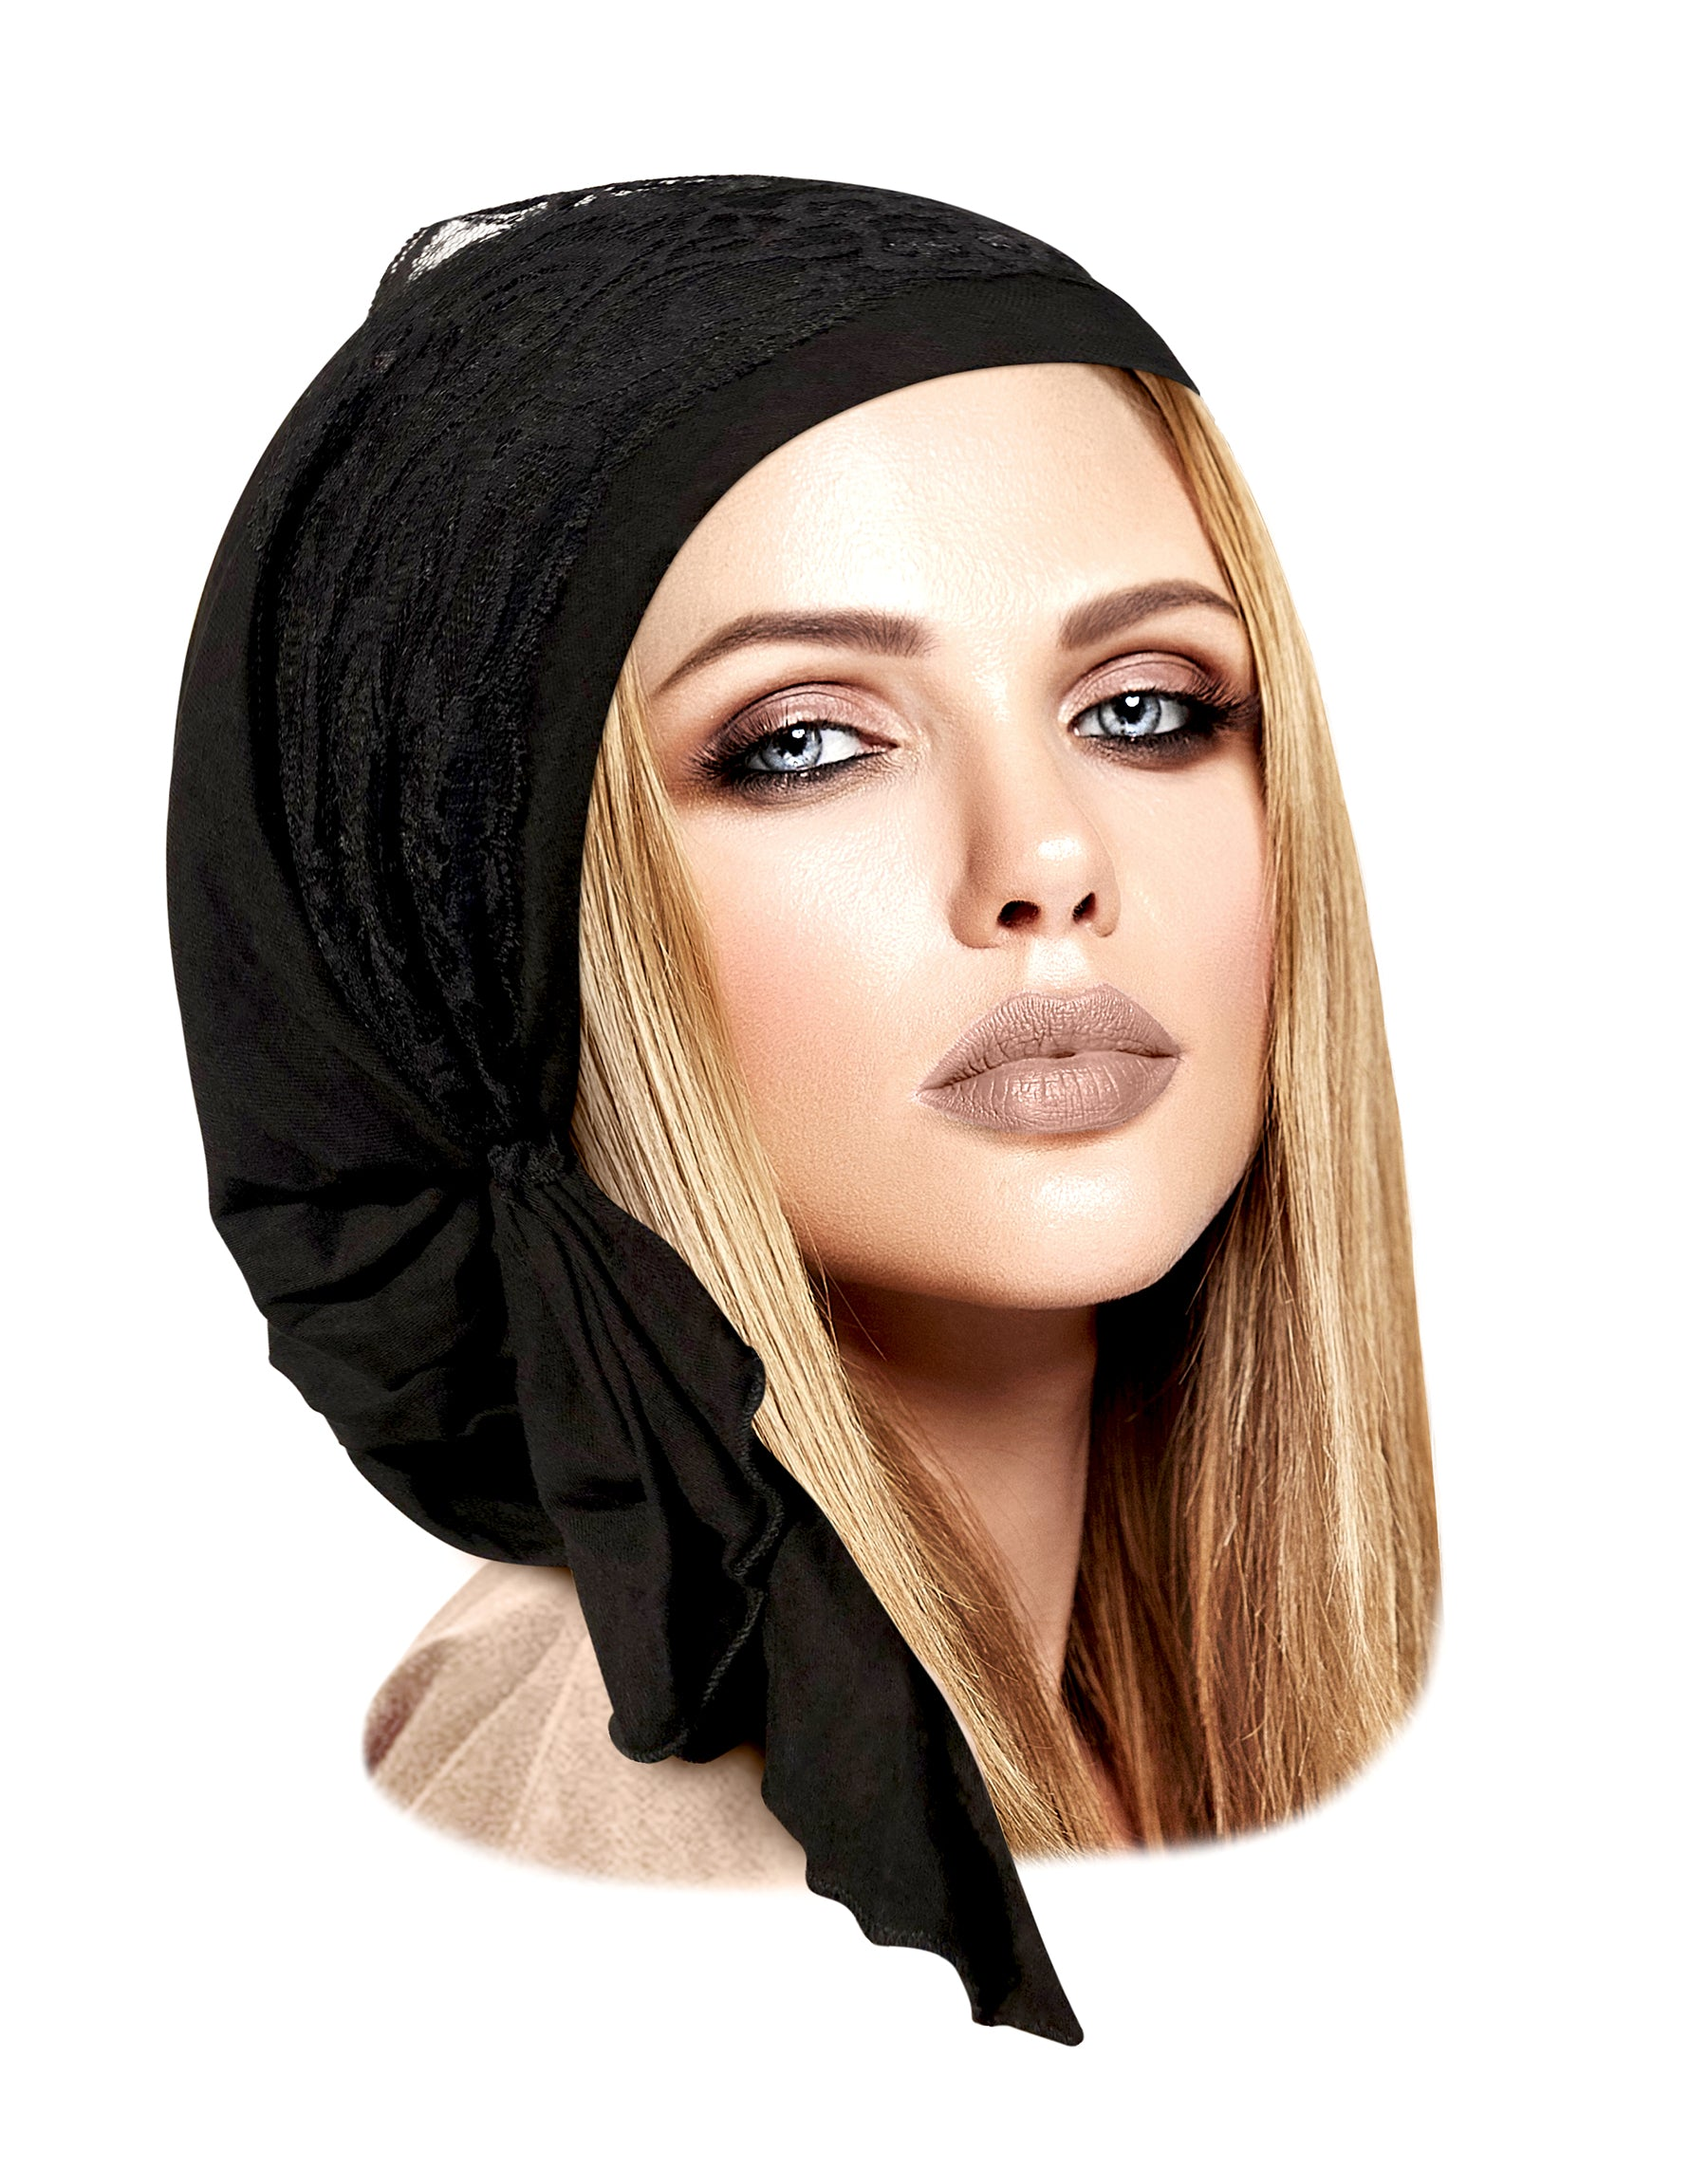 Black headscarf with vintage black lace